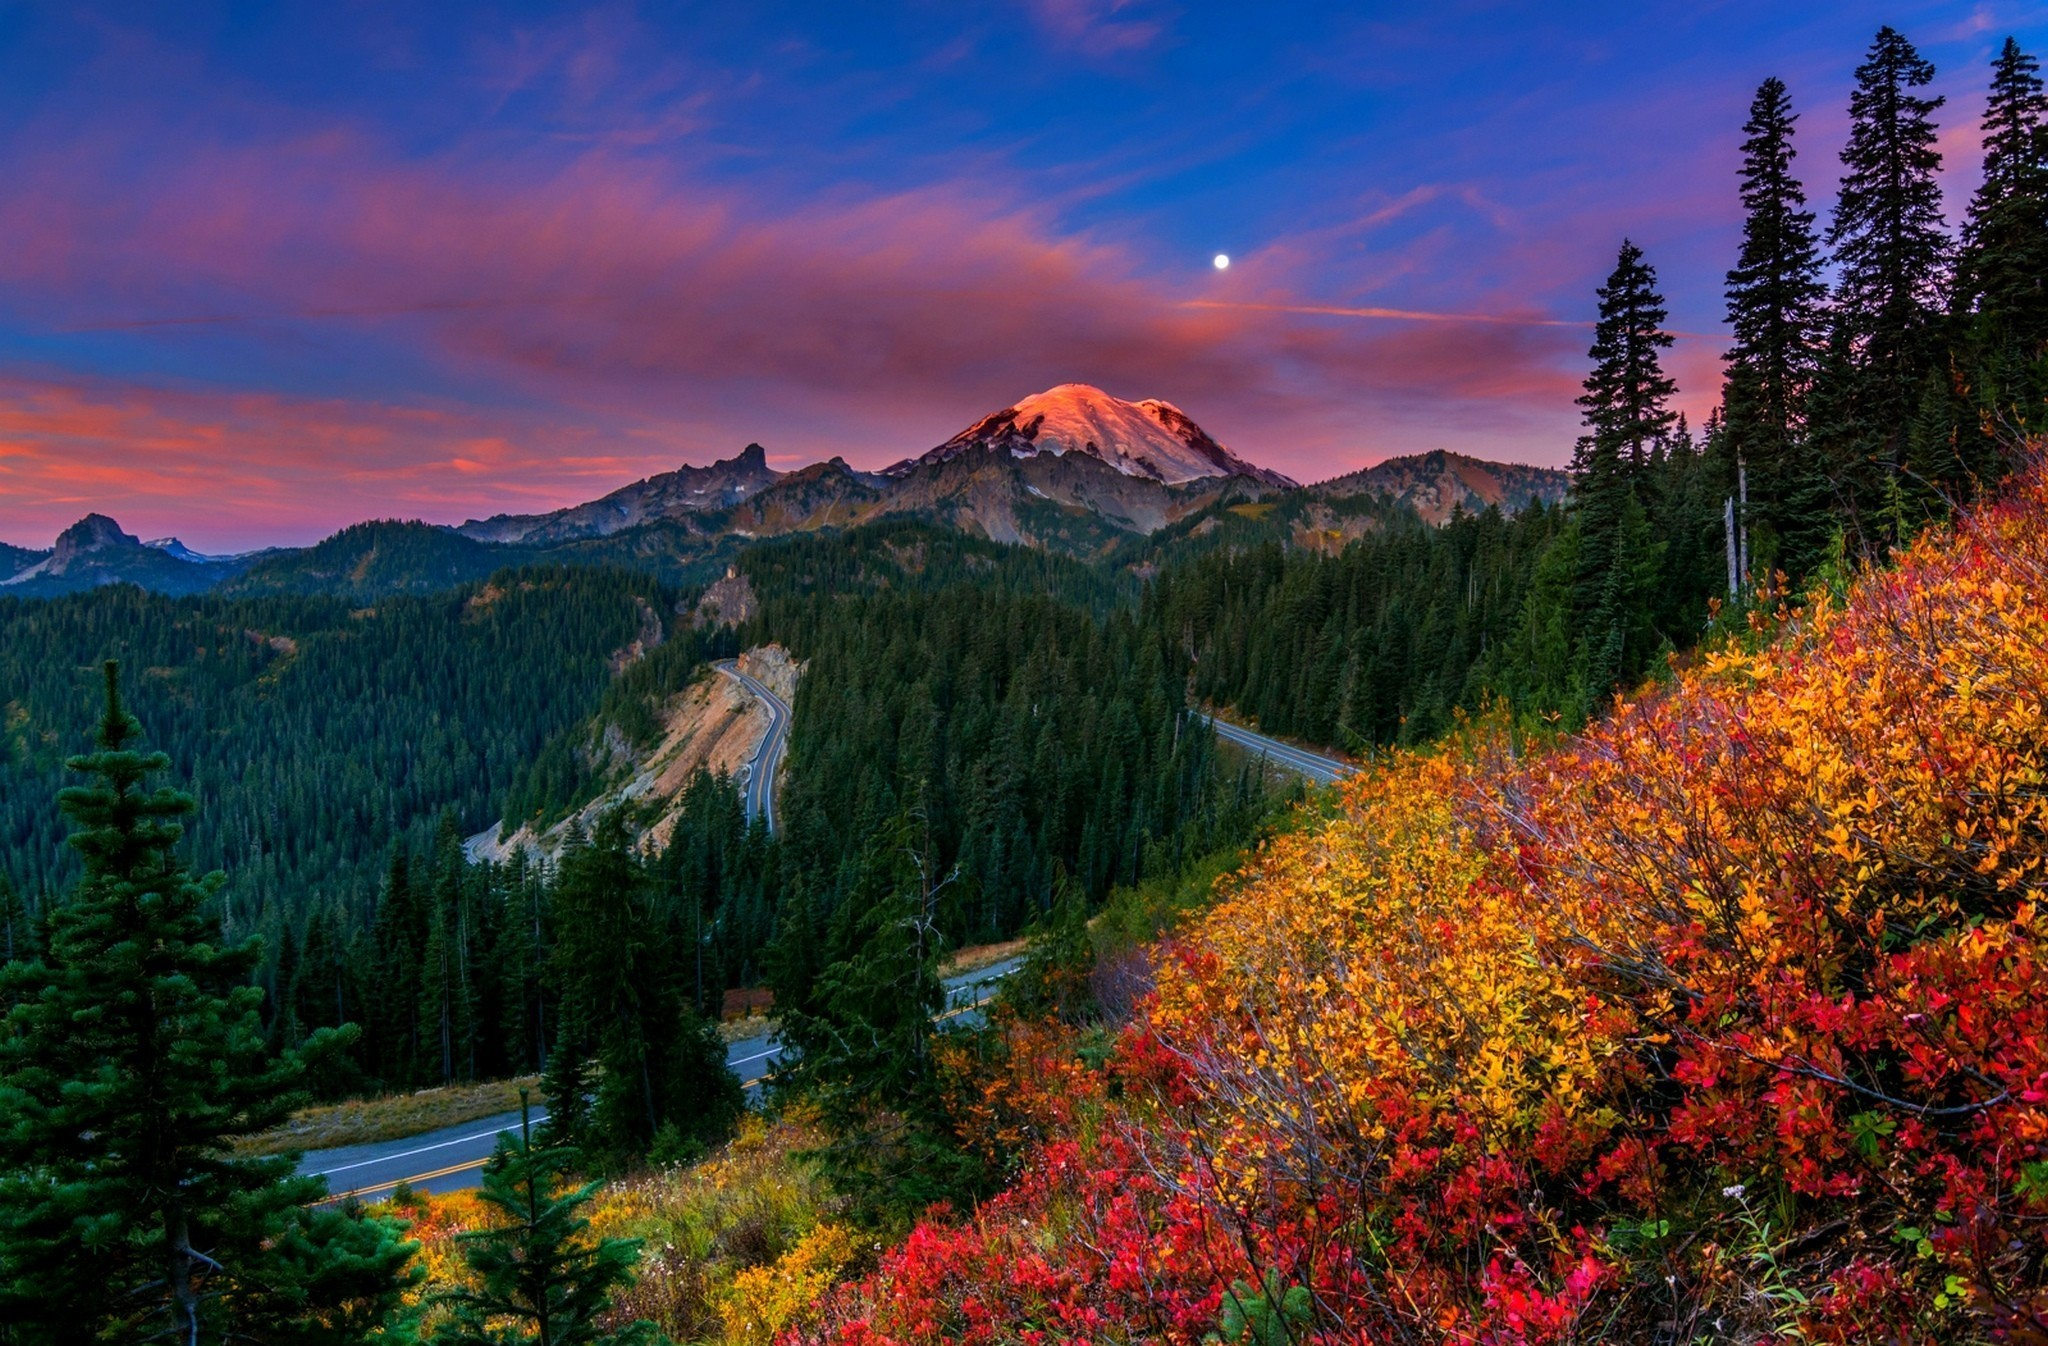 2048x1346 Mount Rainier HD Wallpaper | Background Image |  | ID:558963 -  Wallpaper Abyss